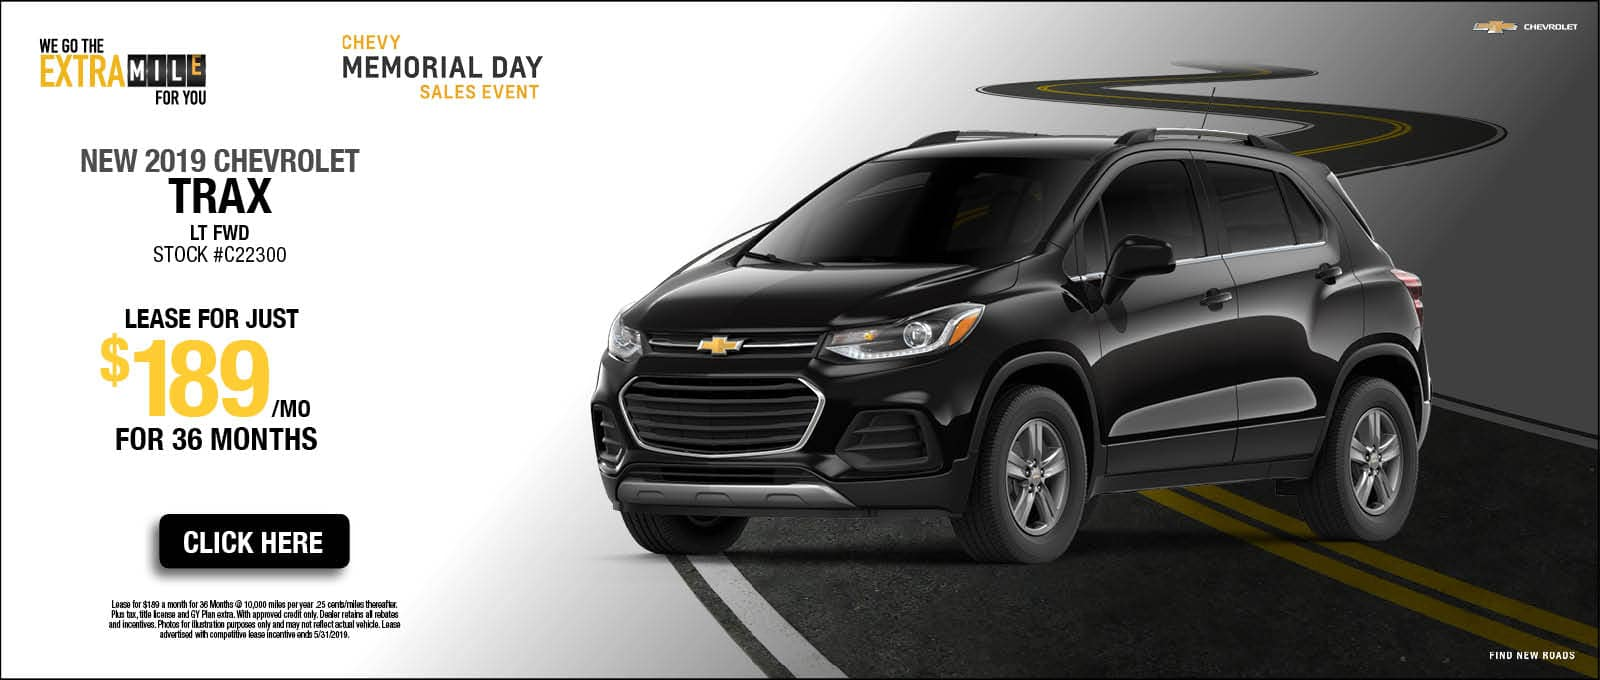 2019 Chevy Trax Memorial